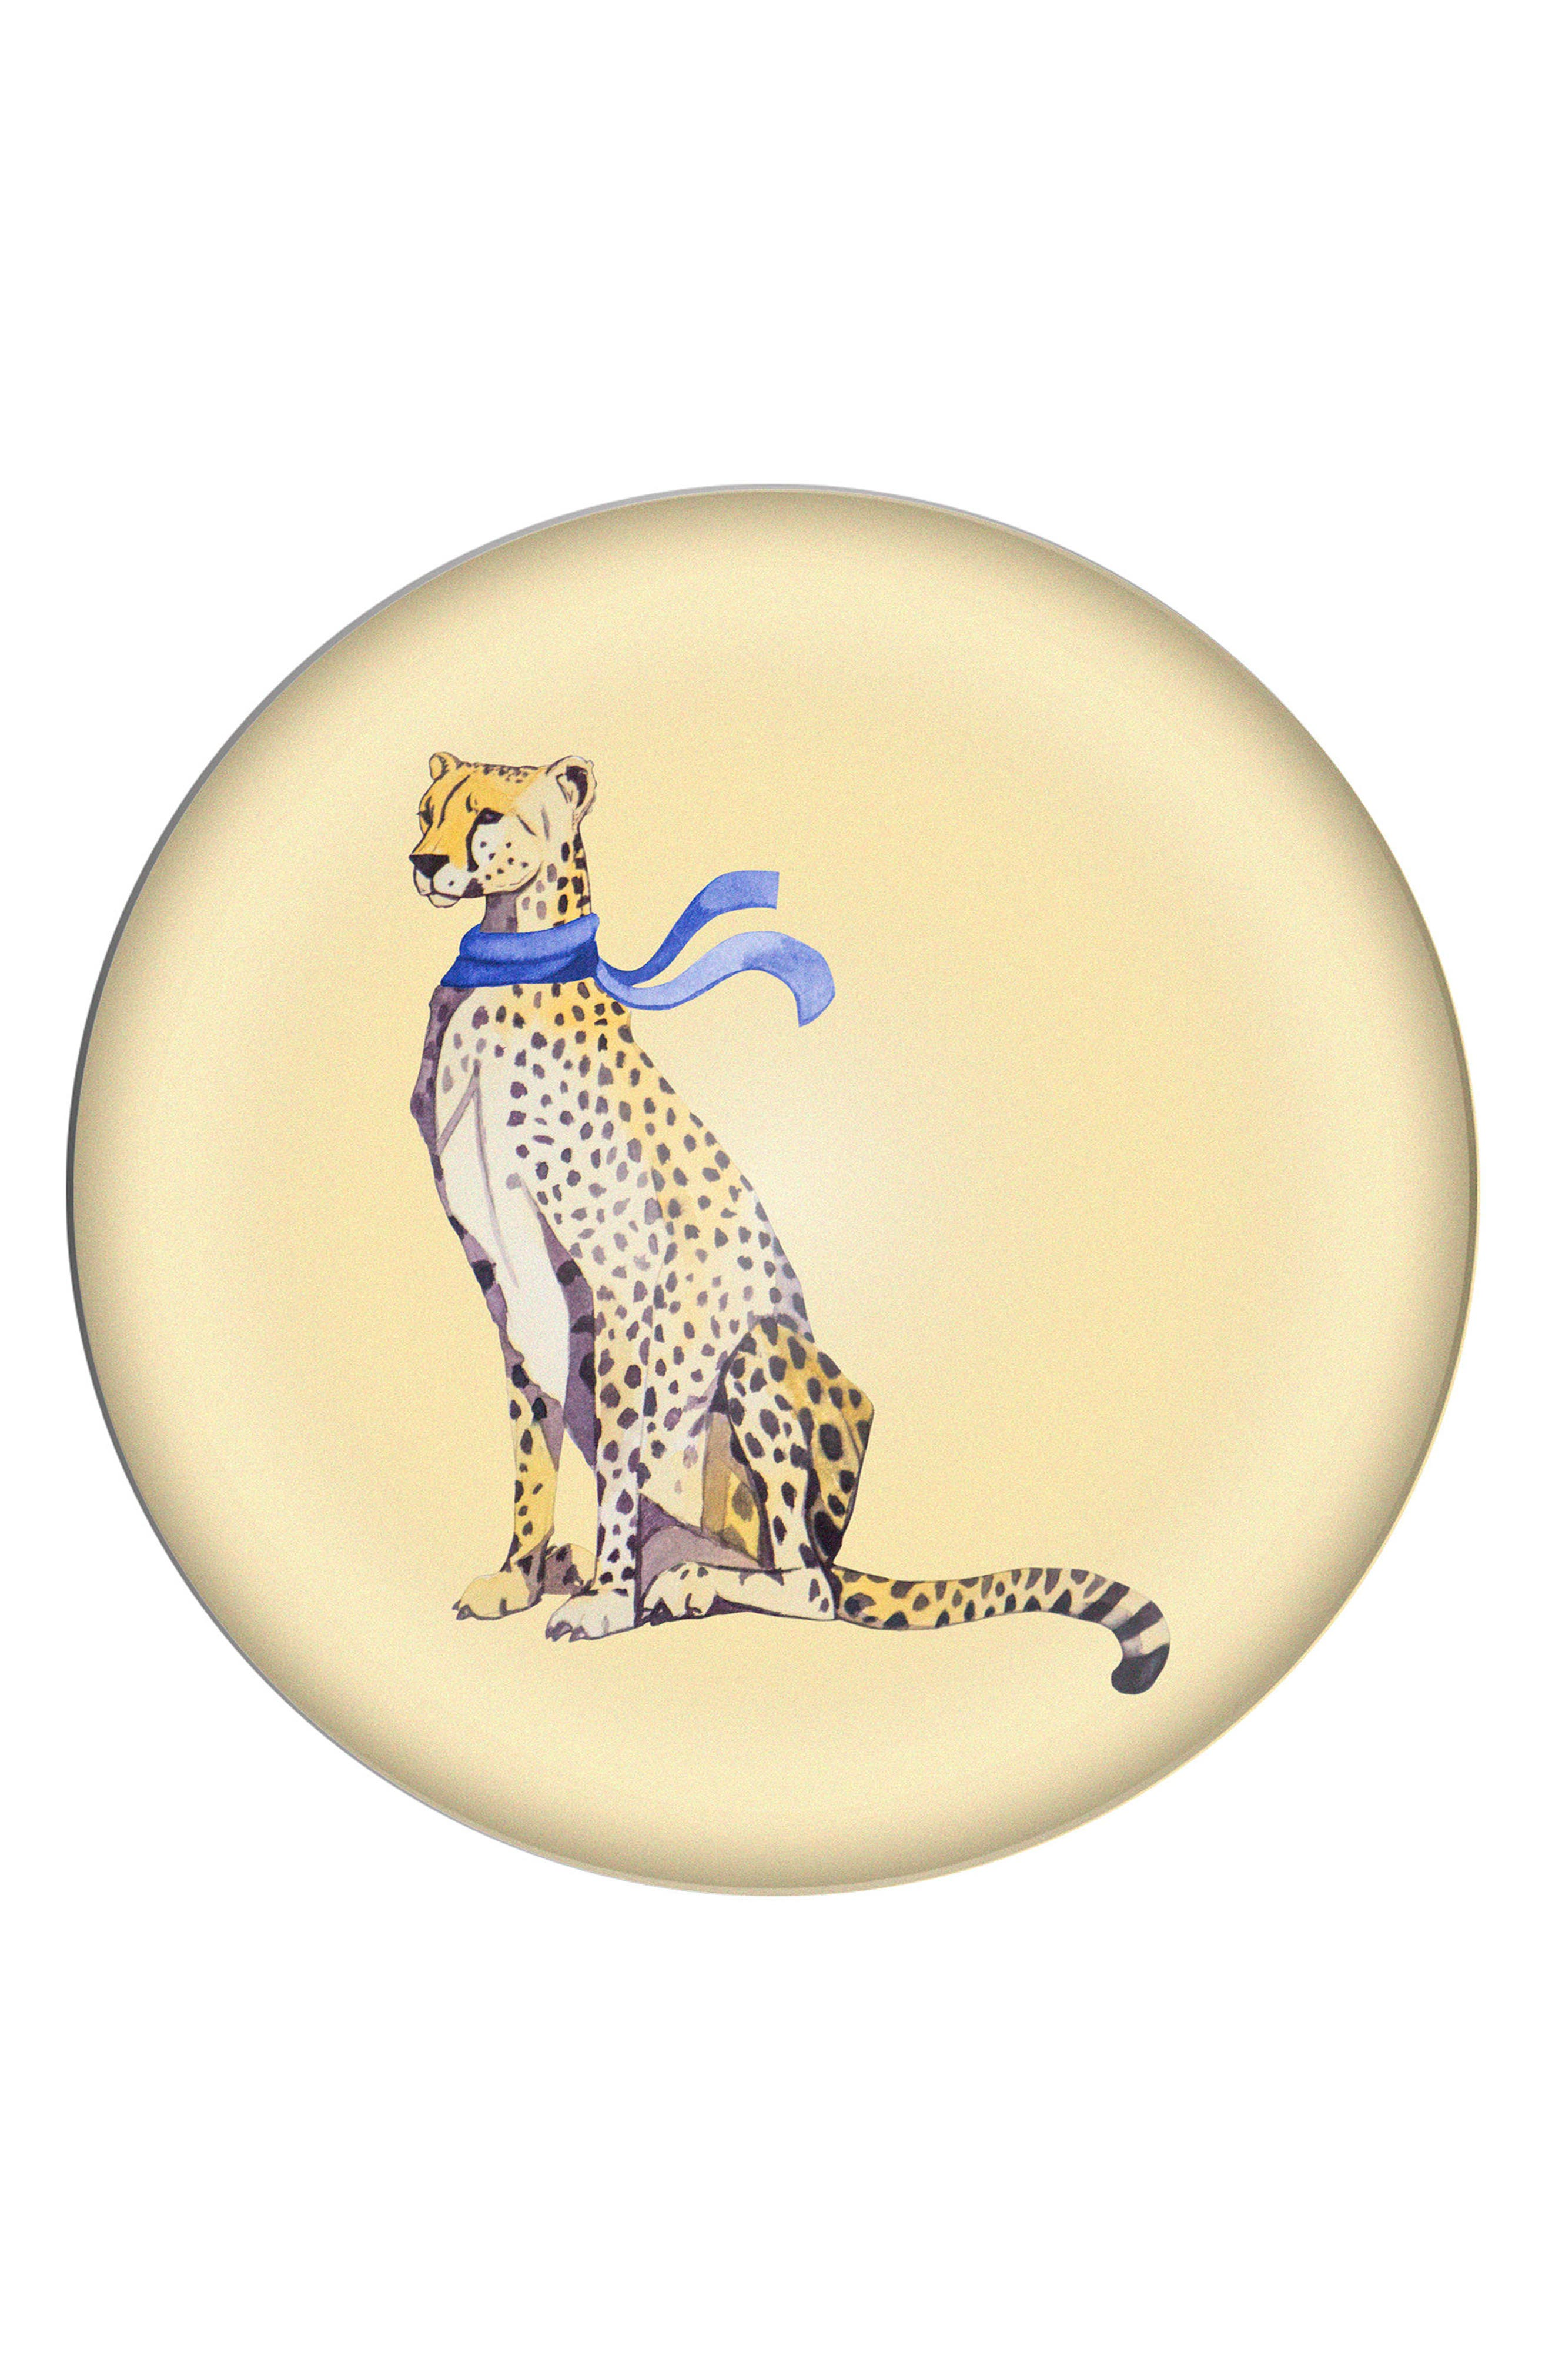 Cheetah Domed Glass Paperweight,                         Main,                         color, 700